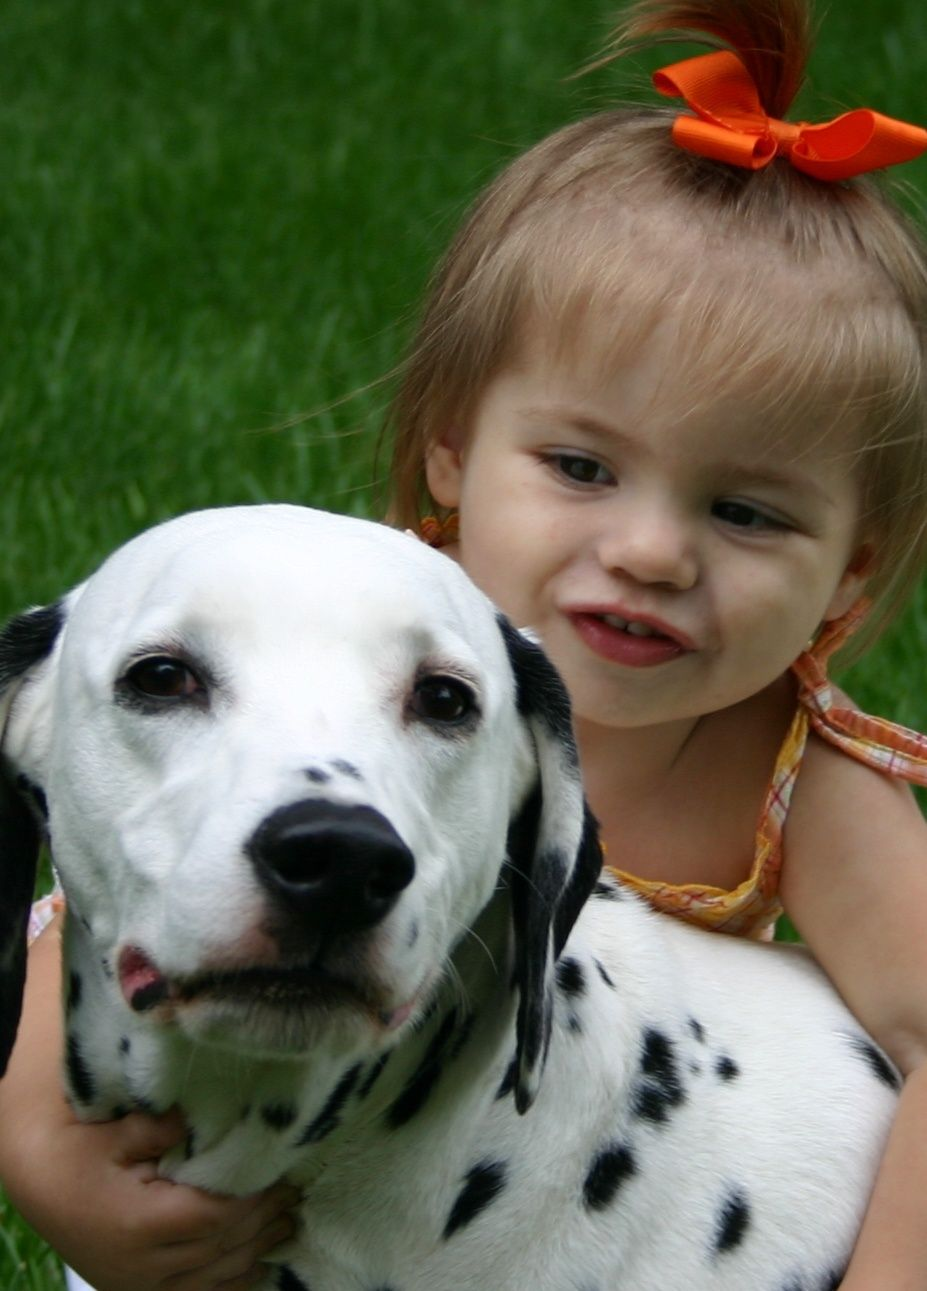 My dalmatian drake was a registered therapy dog and he